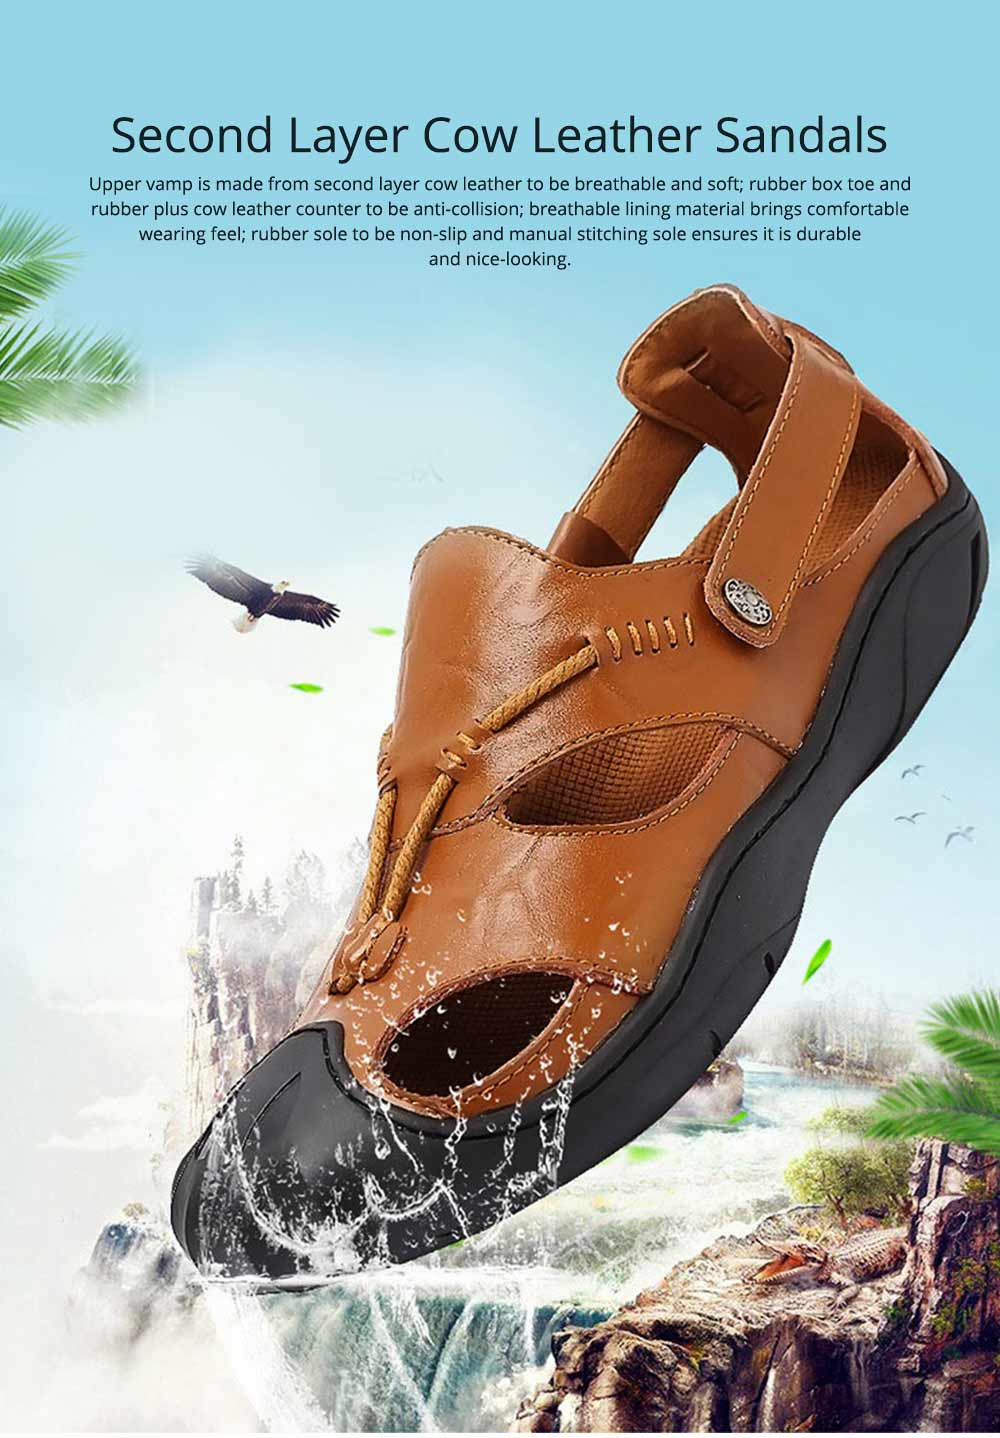 Genuine Leather Men's Sandals, Outdoor Sports Shoes Beach Shoes for Casual Activities, Soft Sole Trending Sandals for Men 0